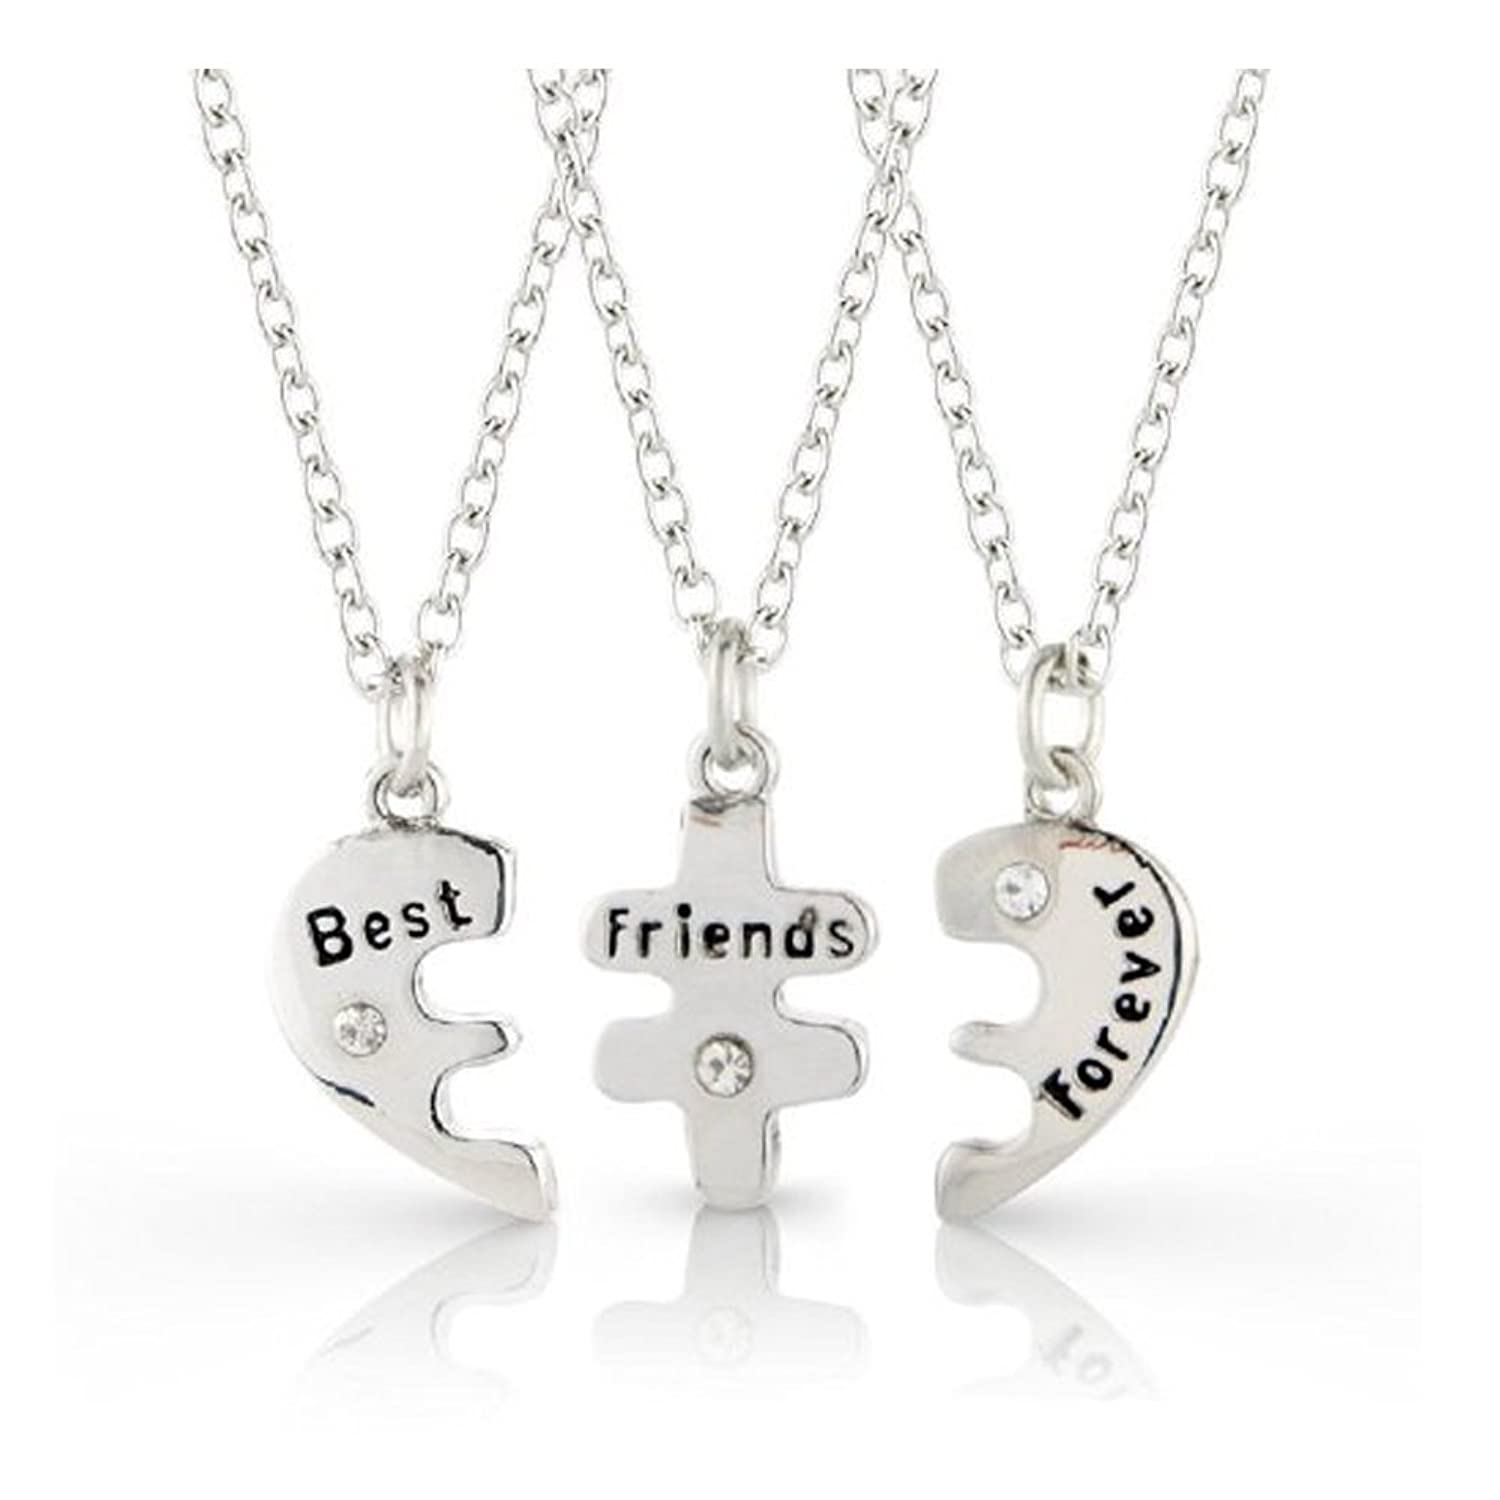 necklaces club lockets set friend breakfast product best nerdtastic bff jewelry place